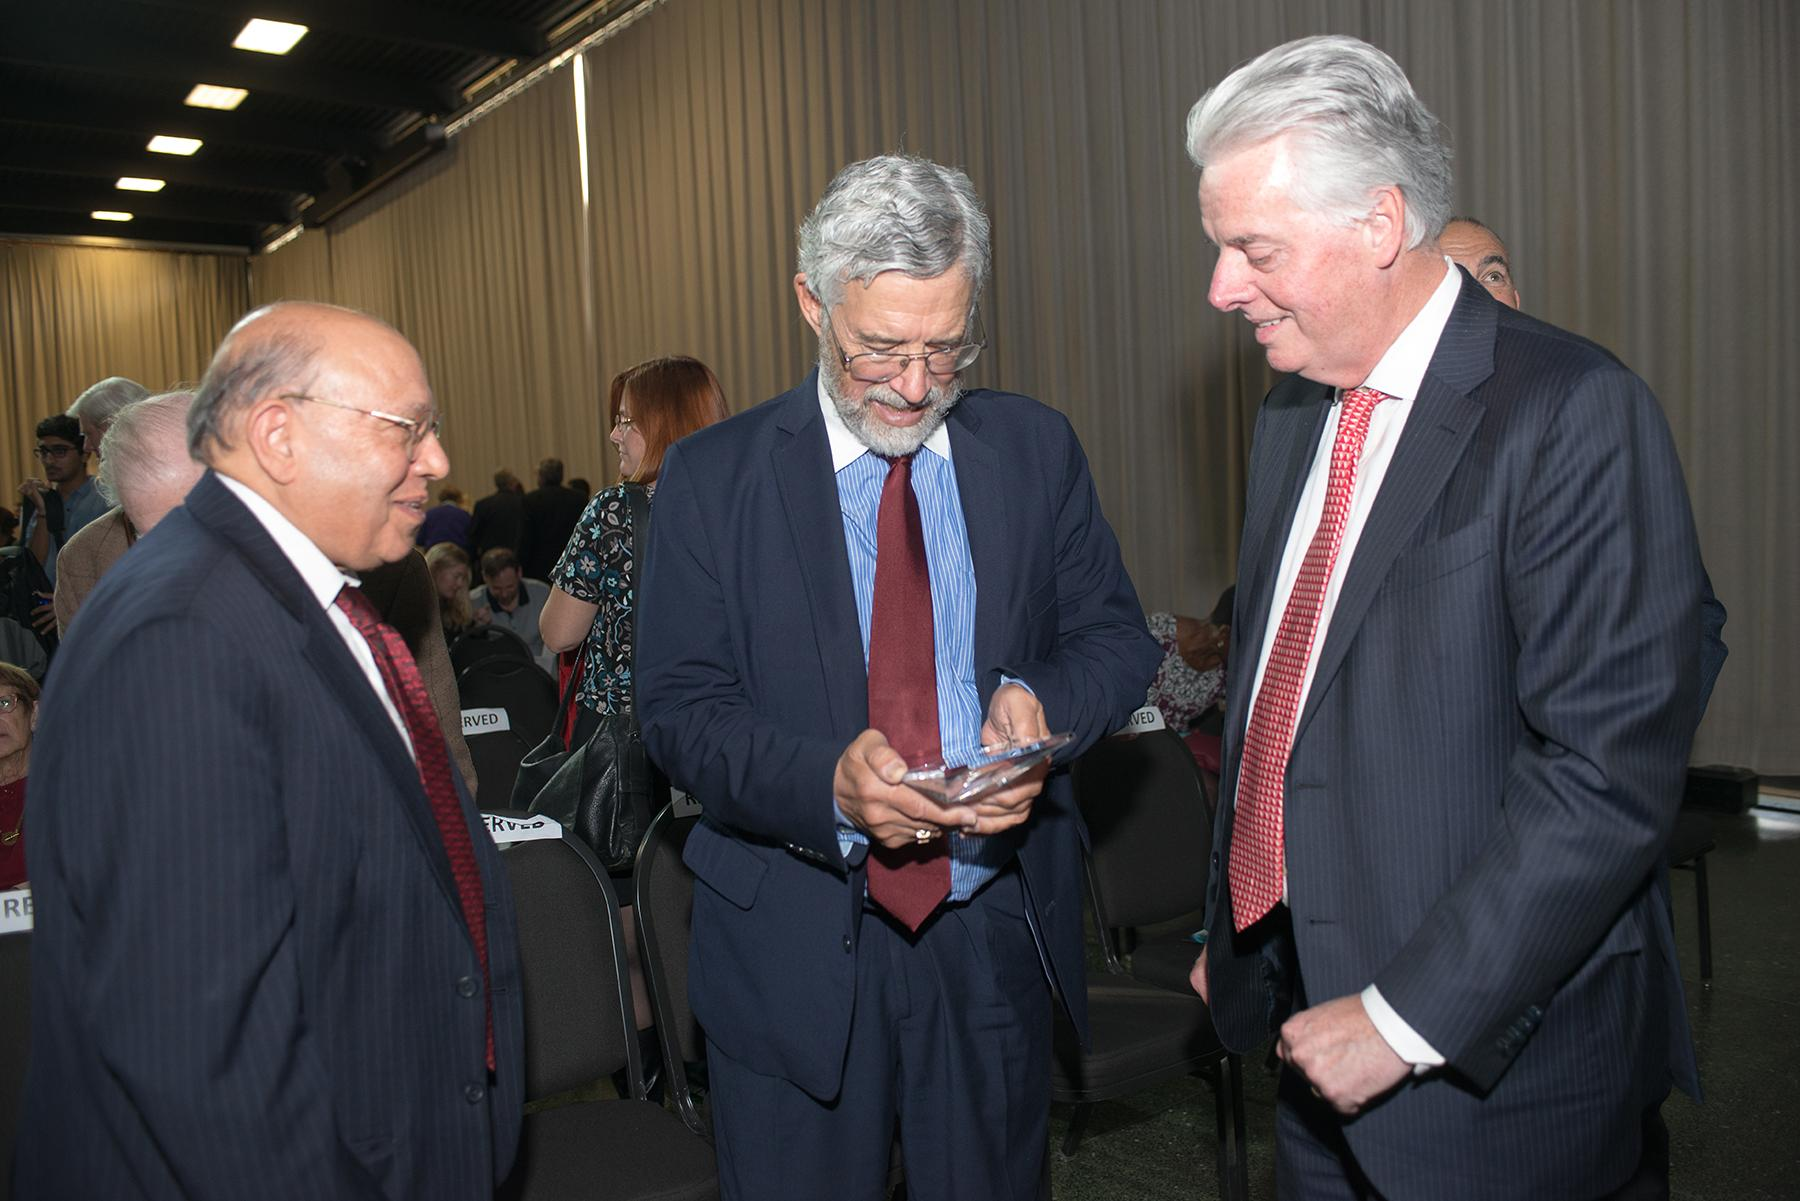 John P. Holdren, center, receives an award Oct. 19 from Illinois Institute of Technology Vice President for International Affairs Darsh Wasan, left, and IIT President Alan Cramb, right. (Bonnie Robinson / Illinois Institute of Technology)